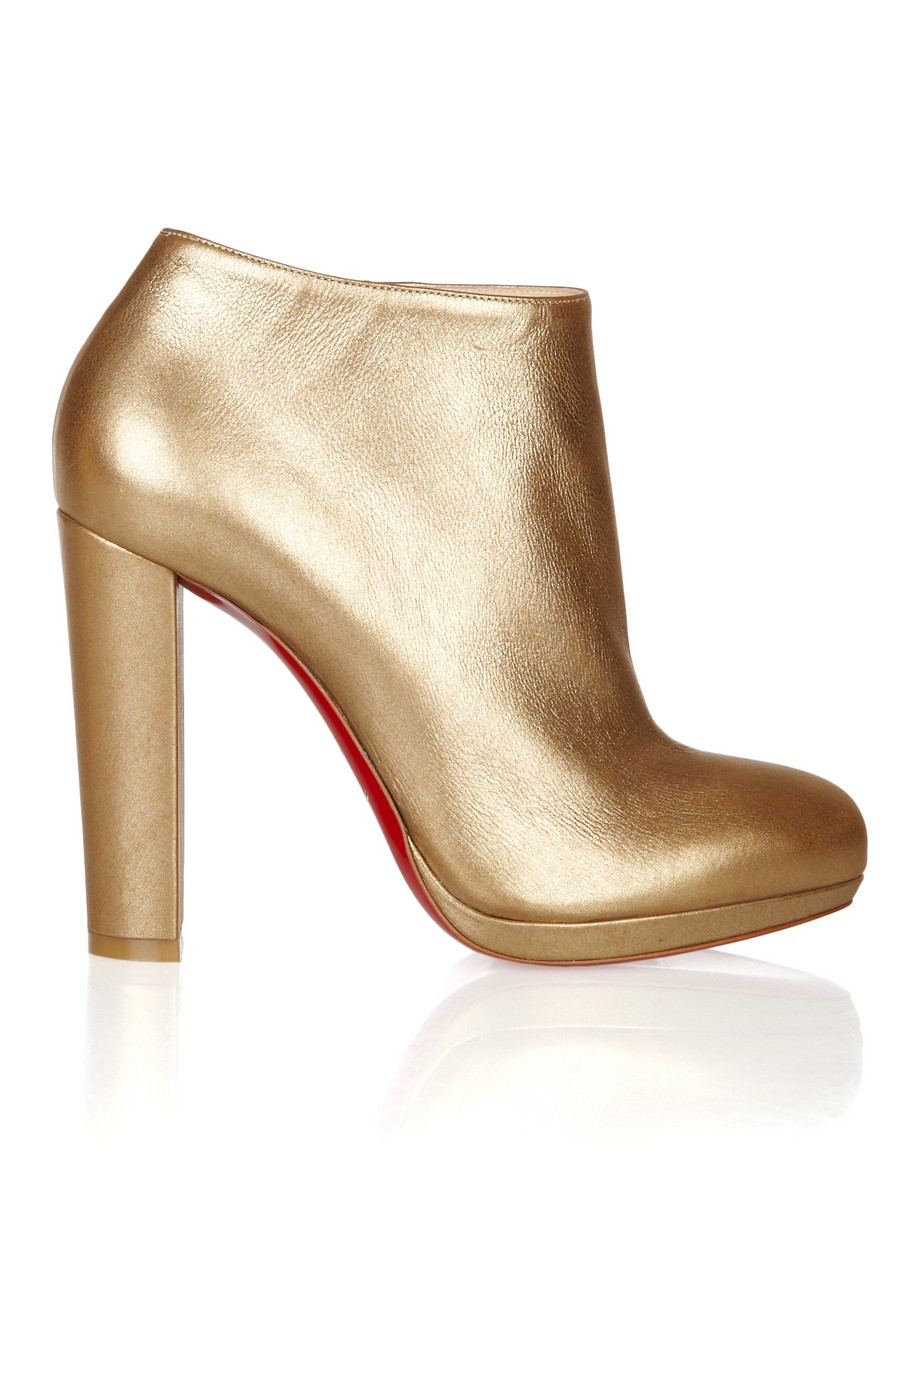 b0be84cefe5 Christian Louboutin Rock   Gold 120 Metallic Leather Ankle Boots in ...